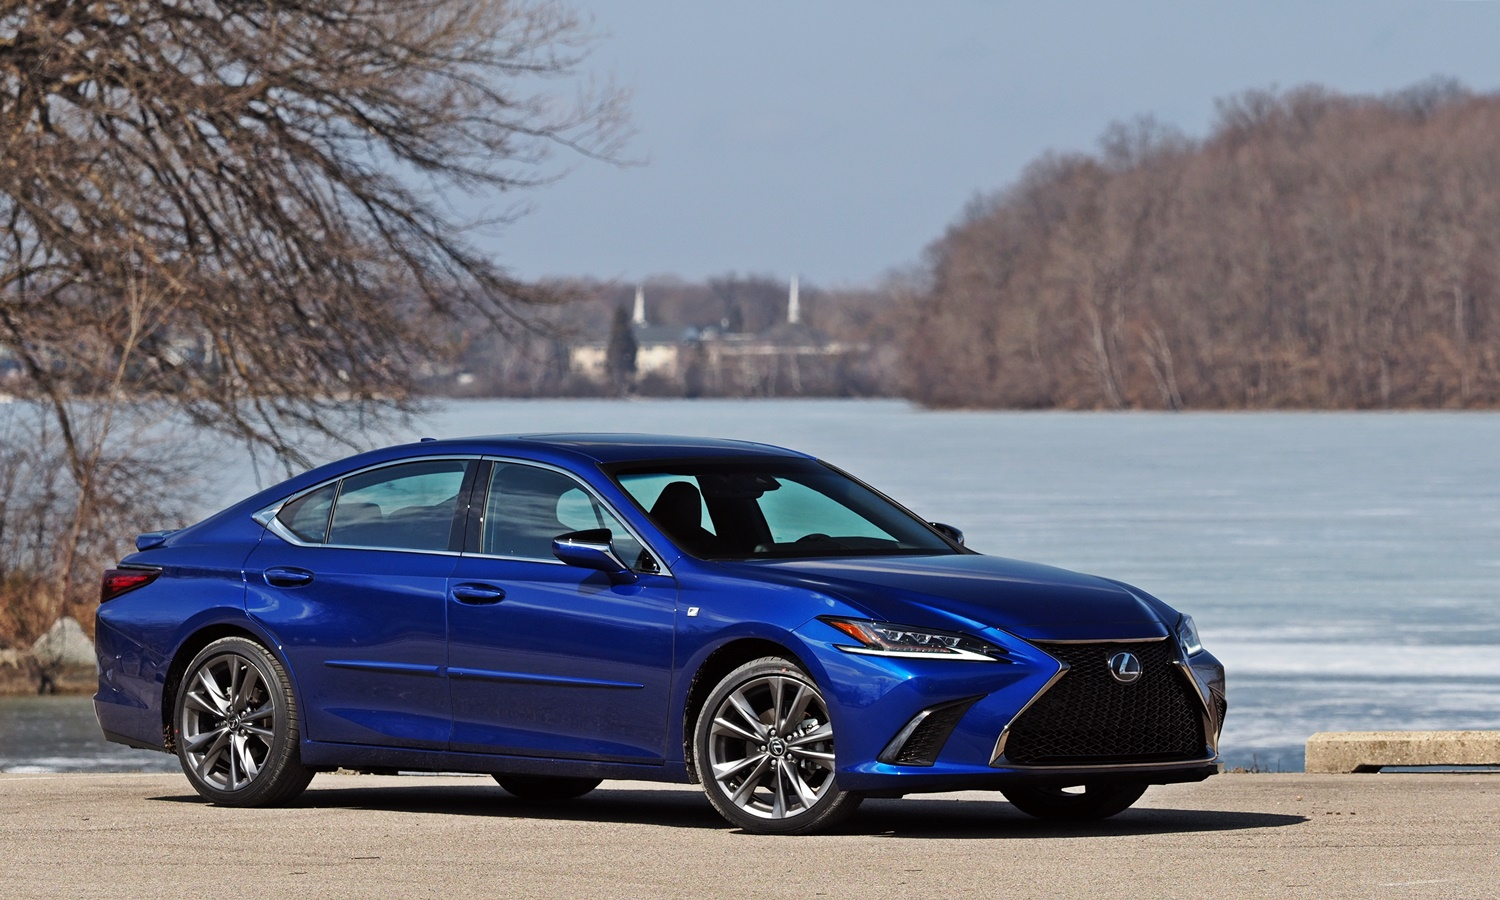 ES Reviews: Lexus ES 350 F Sport front quarter view